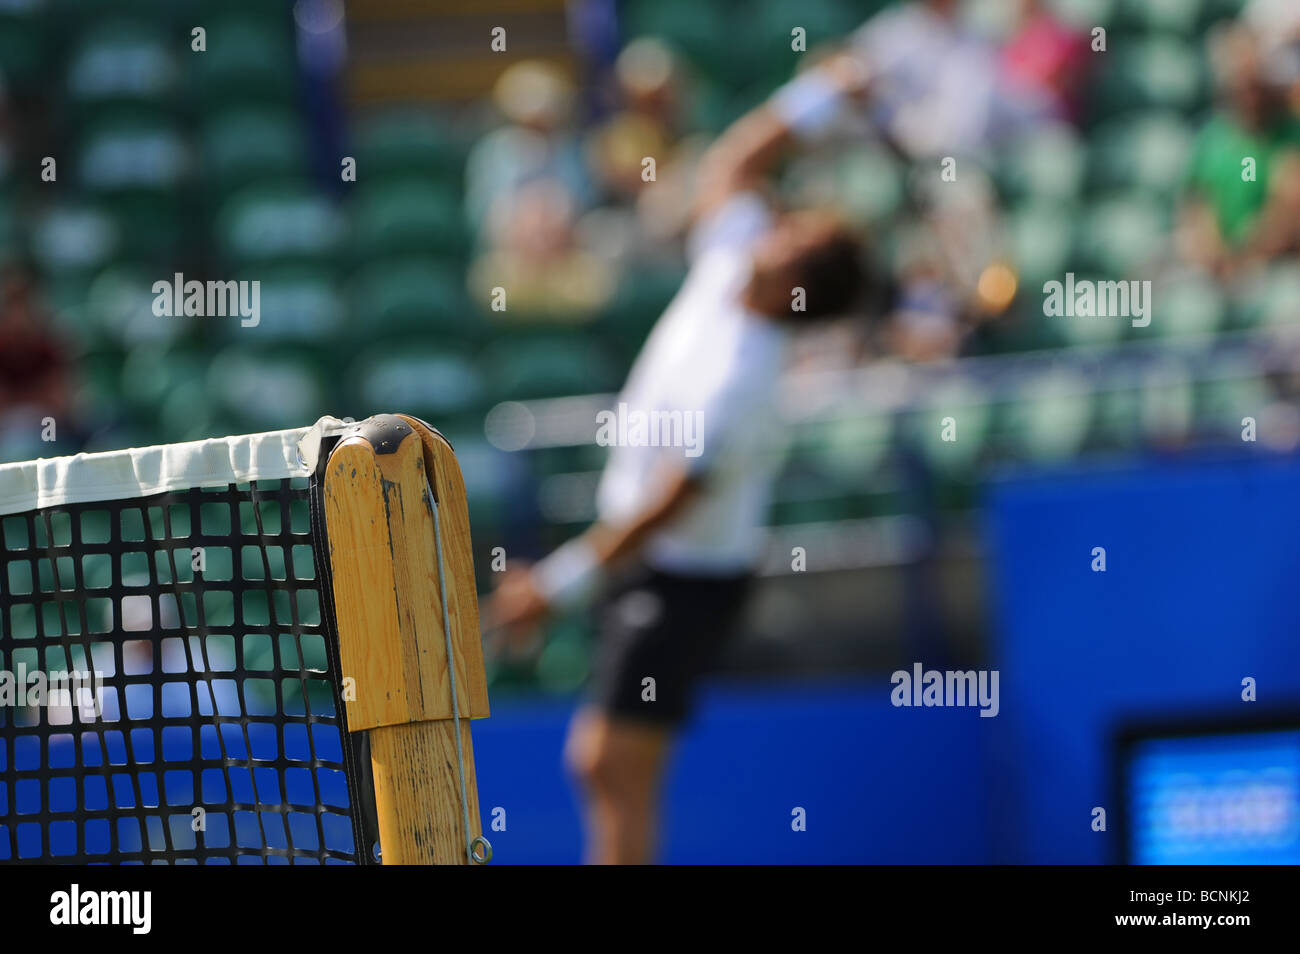 Out of focus tennis player serves - Stock Image